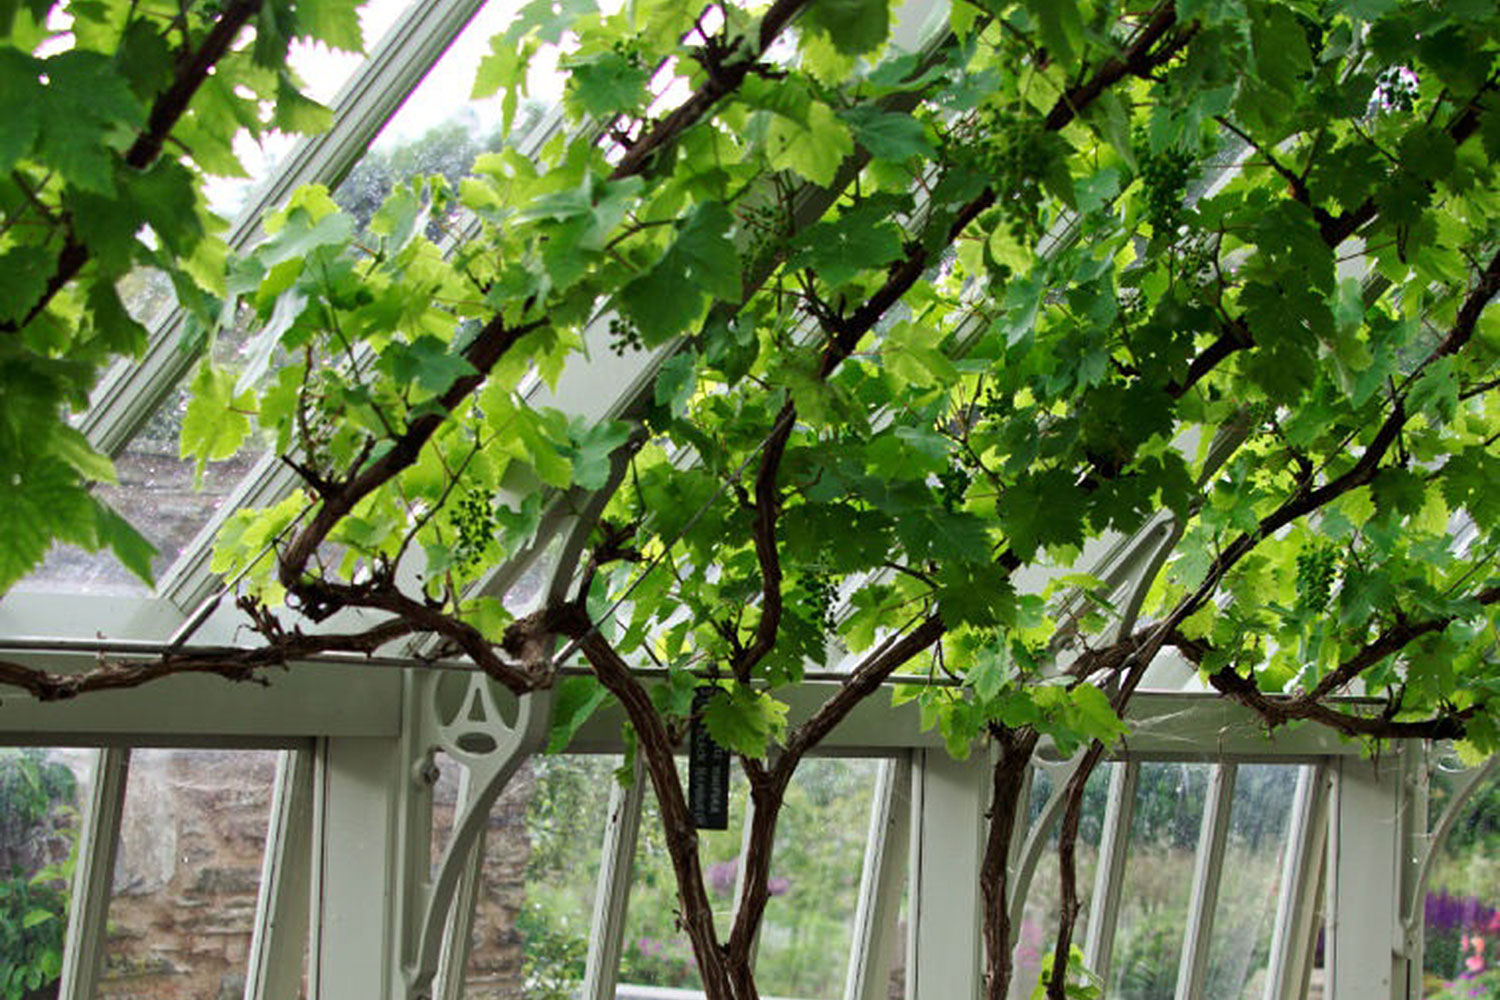 Fruit supports (Alitex greenhouse accessories)